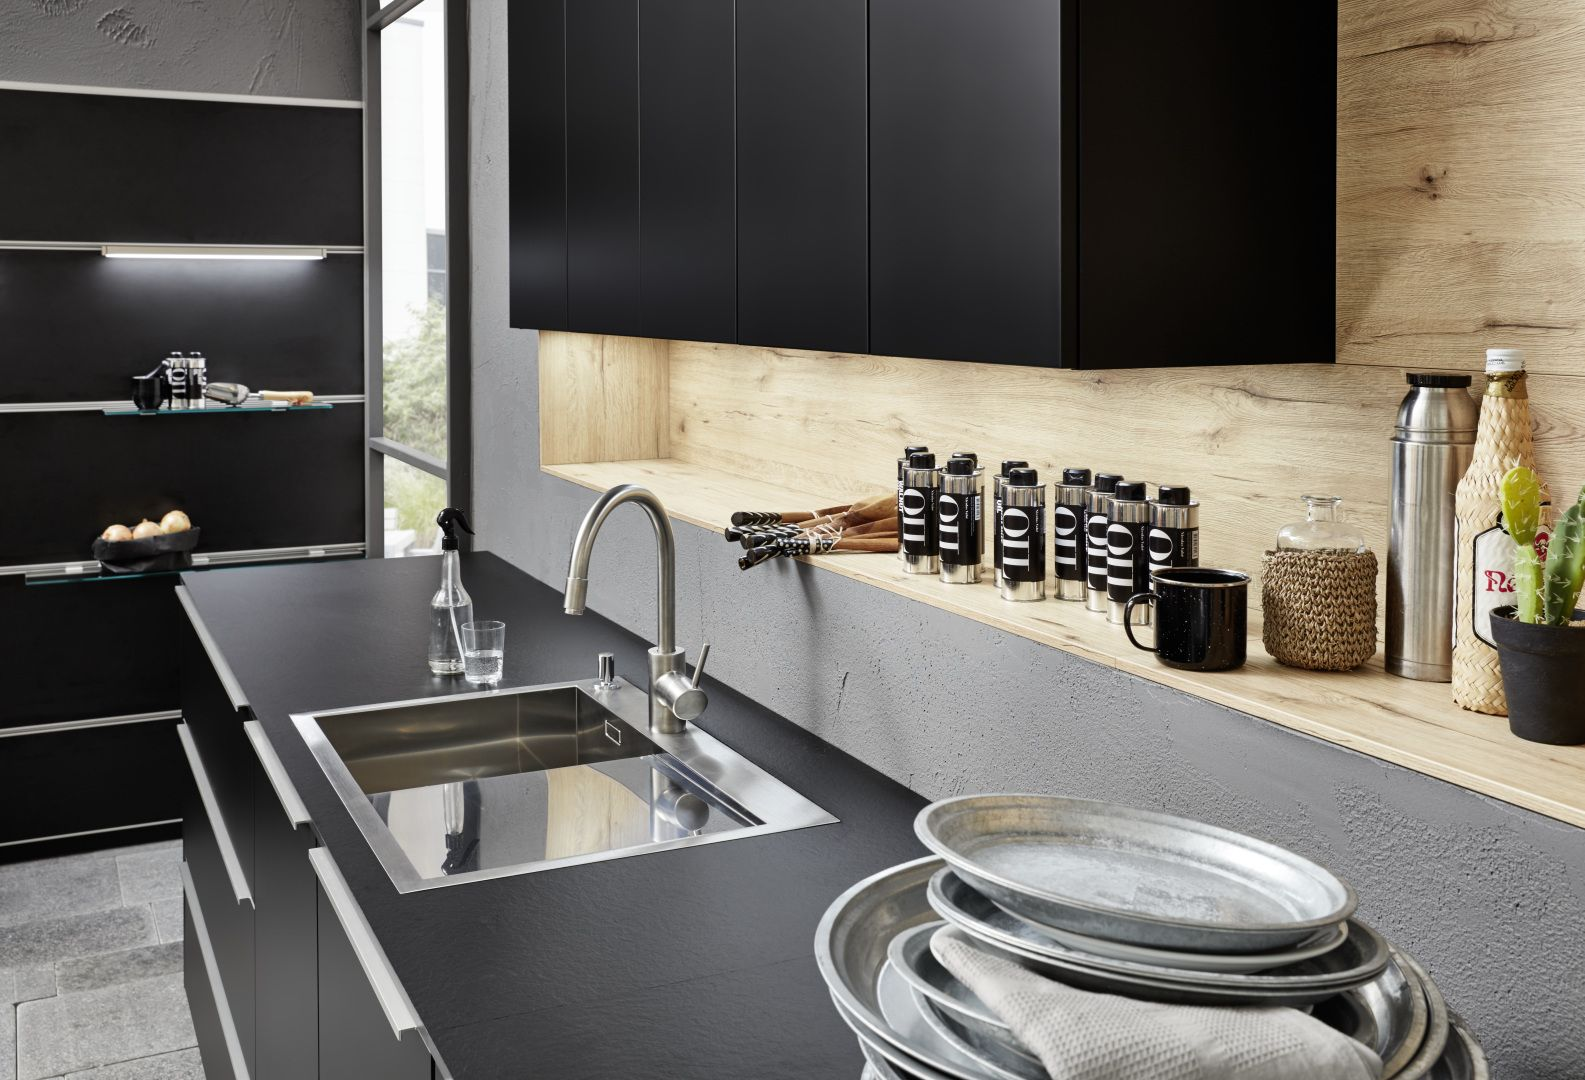 Https://www.nolte Kitchens.com/en/modern Kitchens